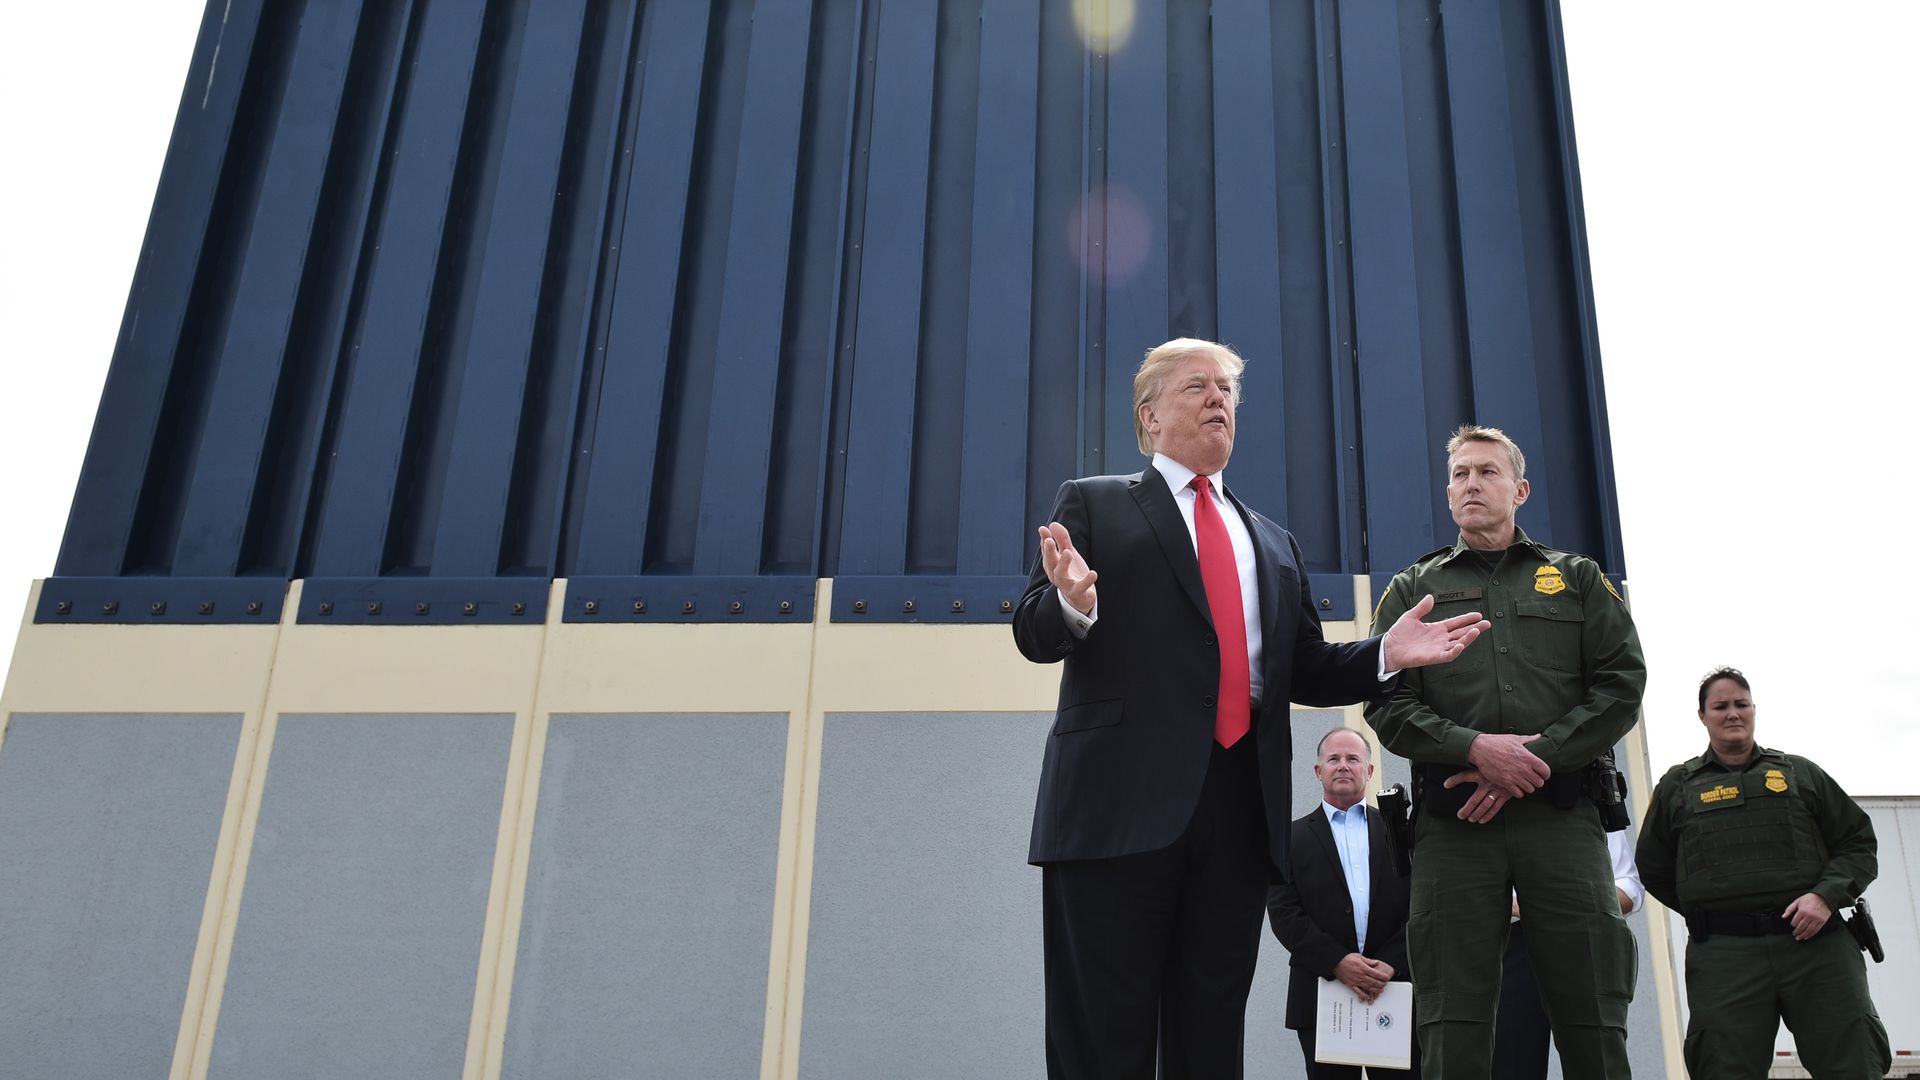 Trump in front of border wall prototype